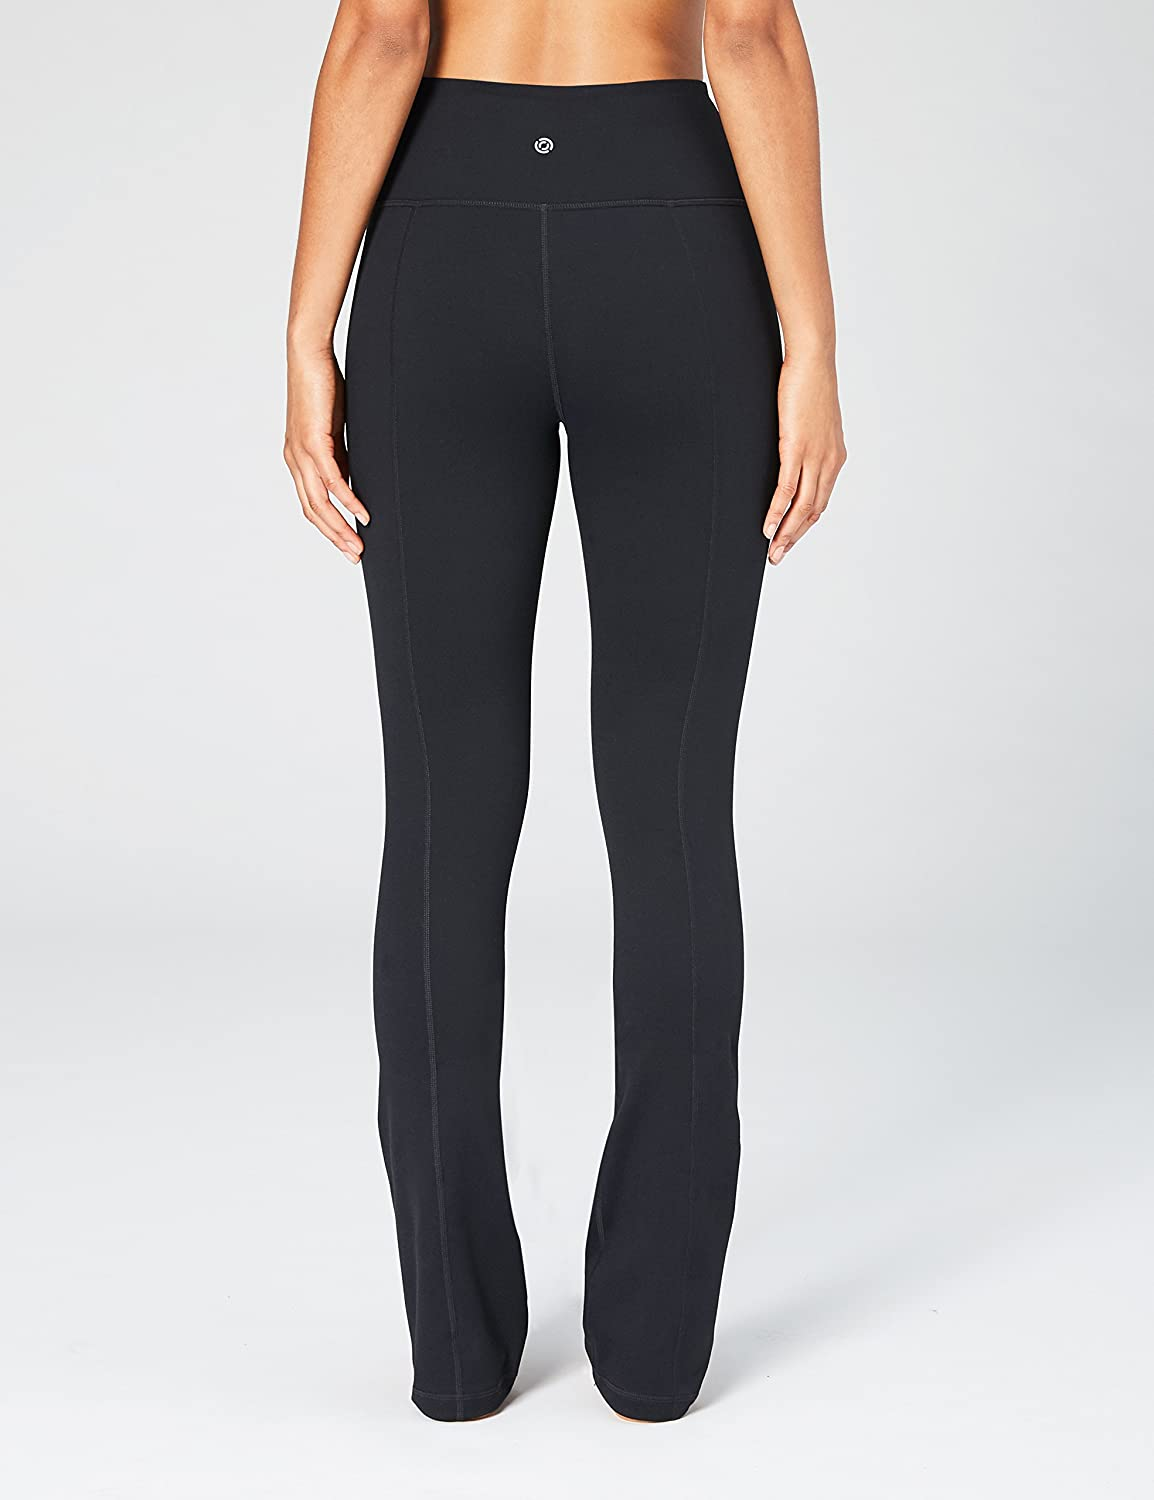 ddce63d287a41b Amazon Brand - Core 10 Women's (XS-3X) 'Build Your Own' Yoga Straight Pant,  Inseams Available